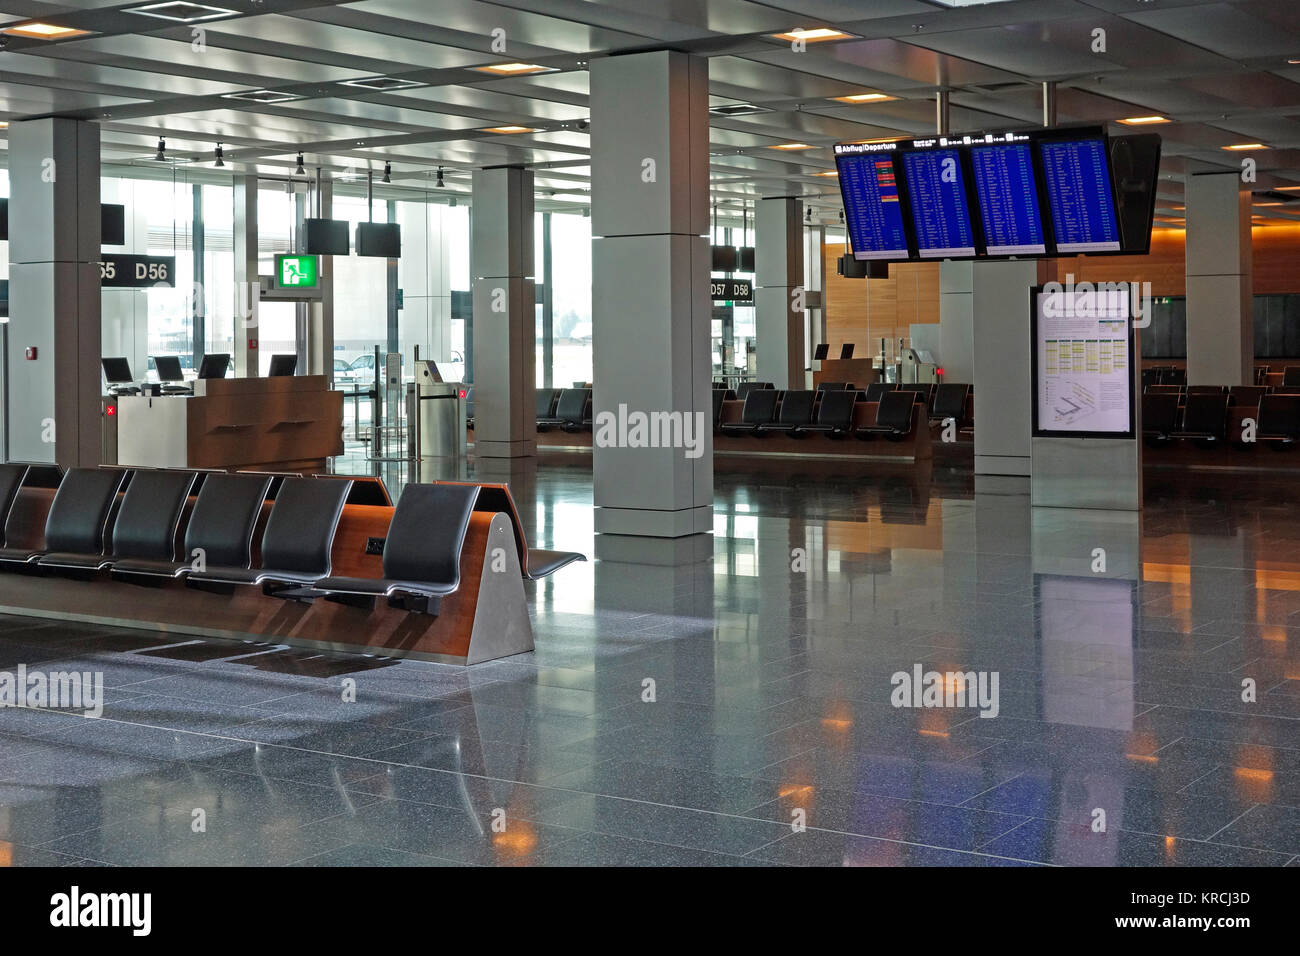 Empty airport departure lounge waiting area with flight information screens. - Stock Image